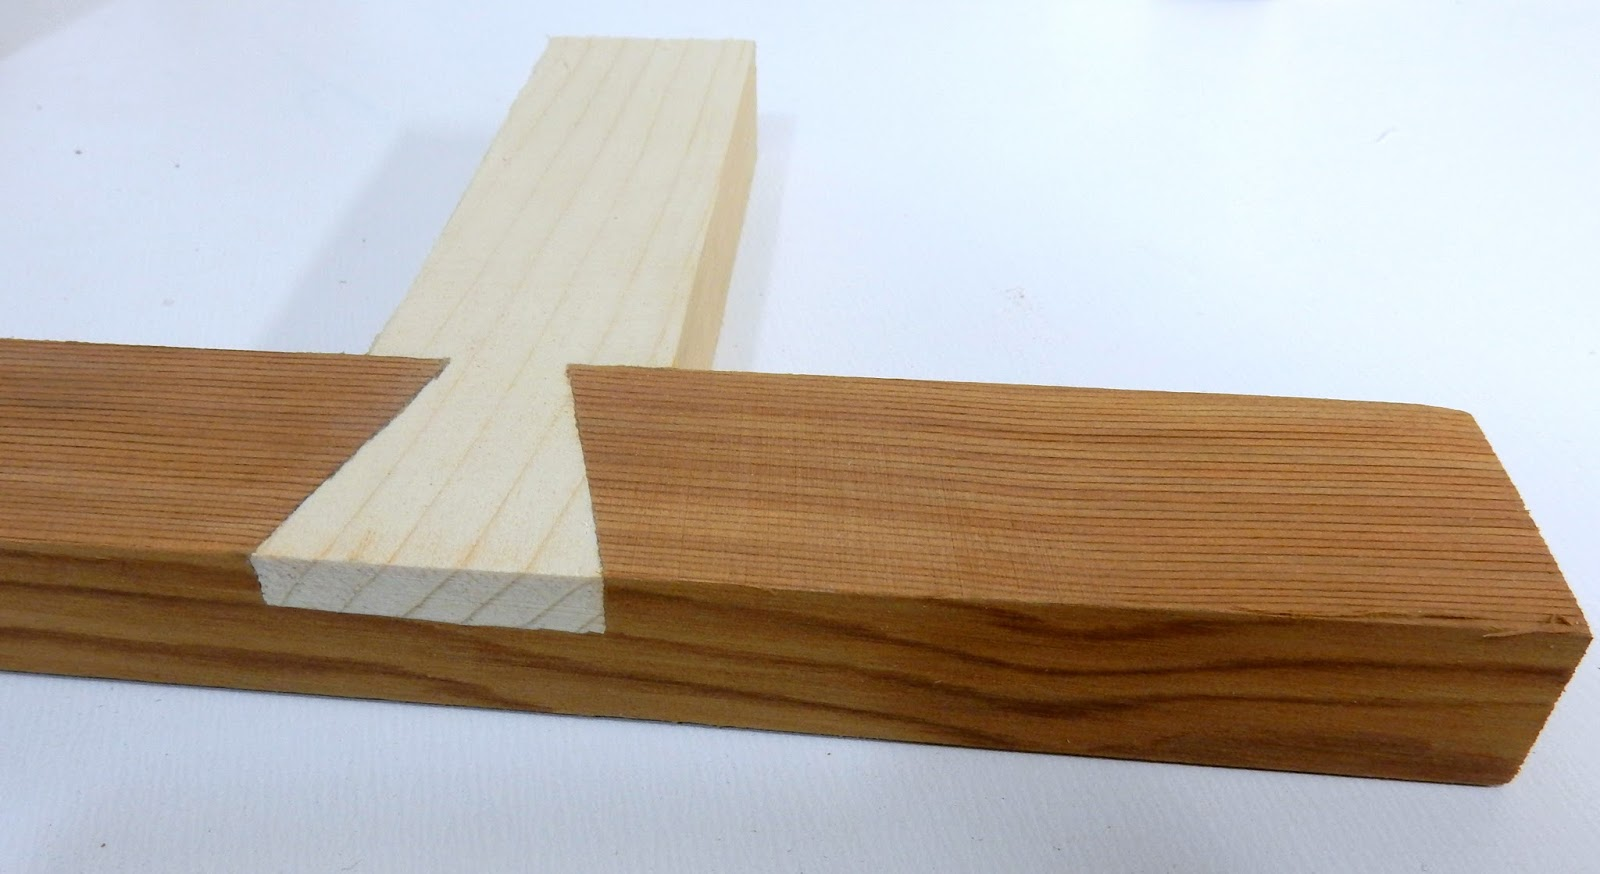 how to make dovetail wood joints